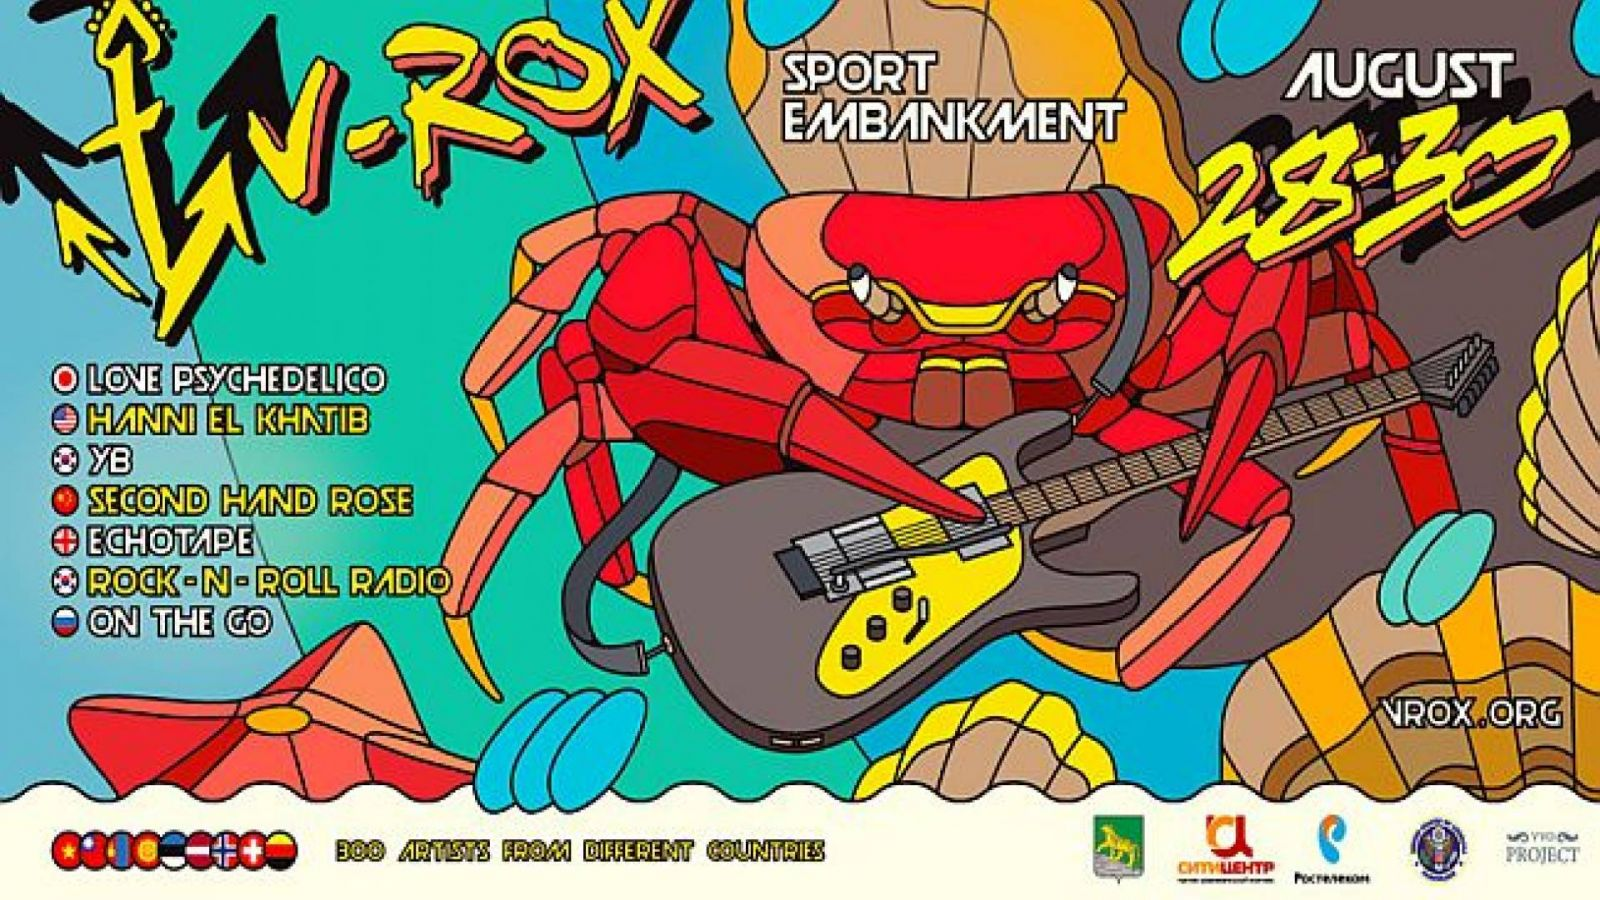 Korean bands to gig at V-ROX, in Russia © V-ROX Festival